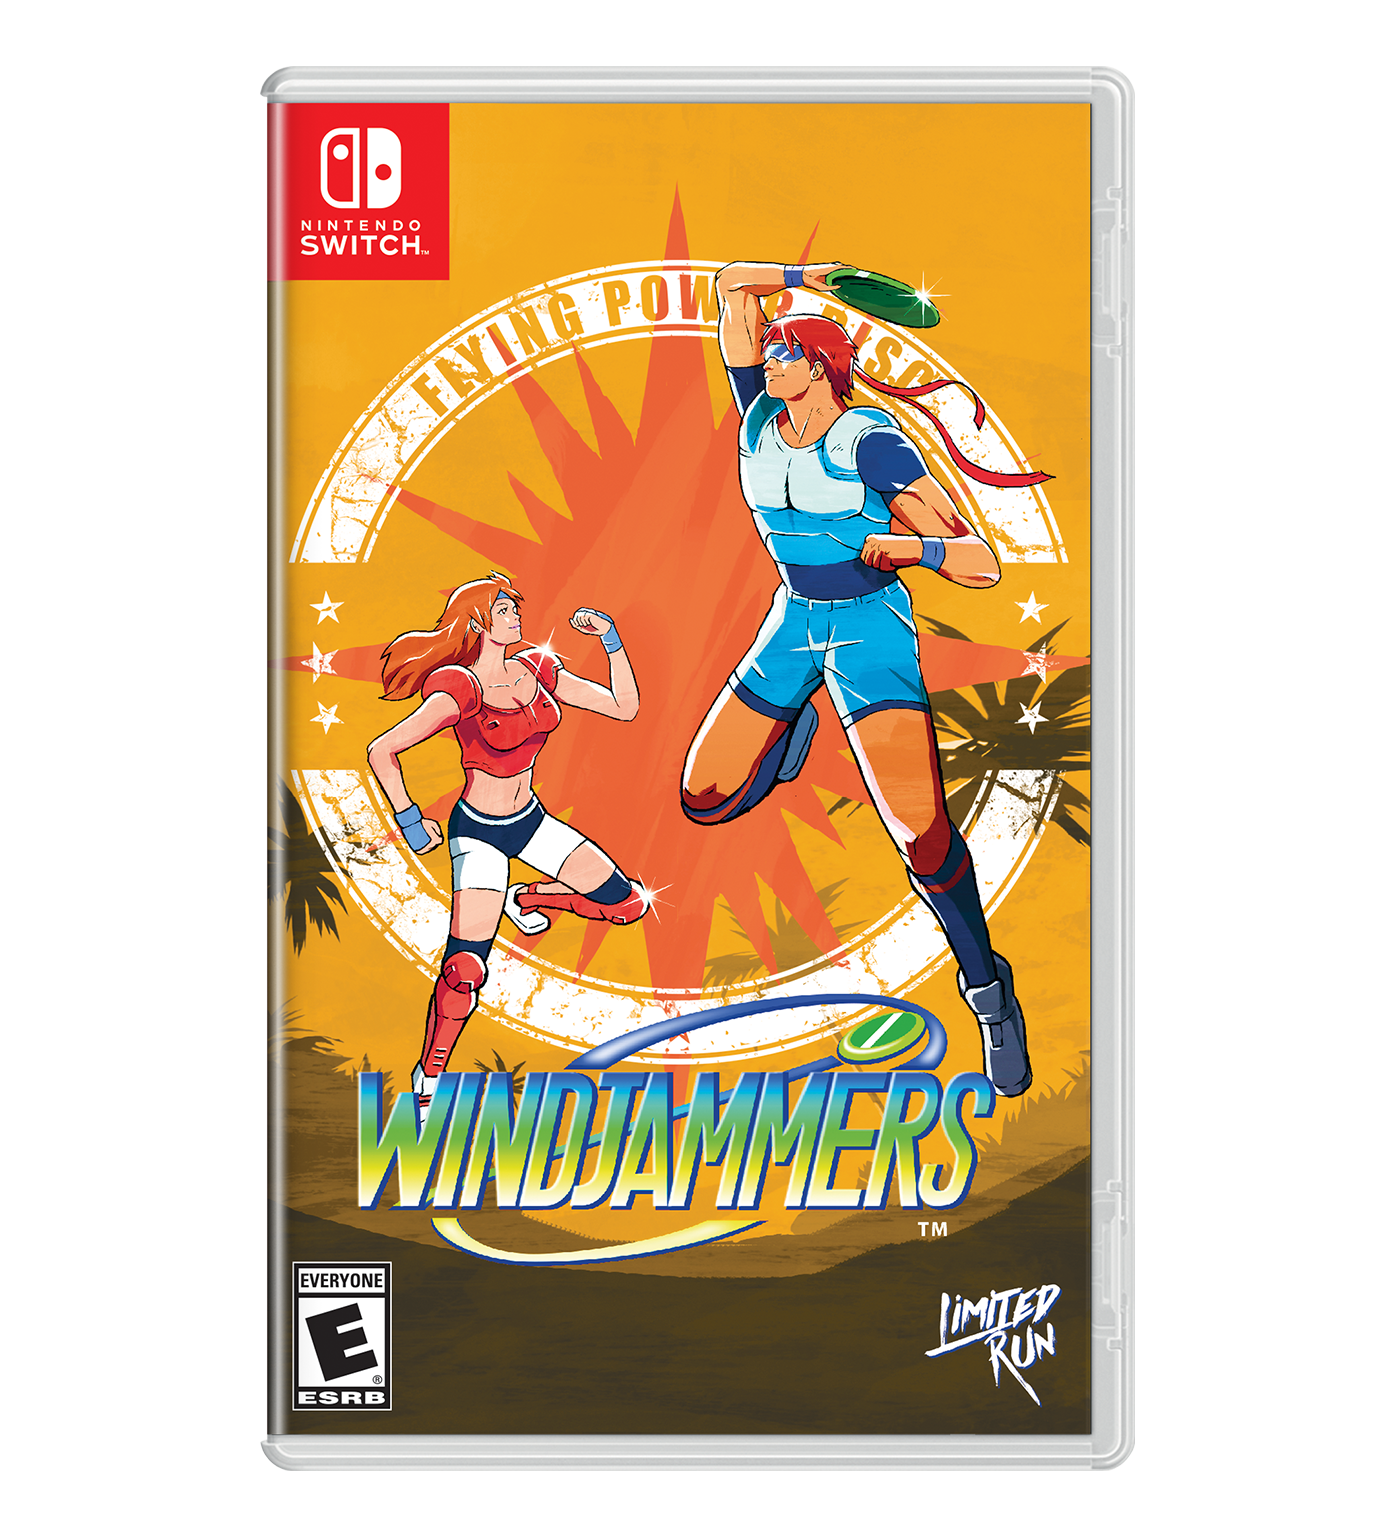 Windjammers Best Buy Exclusive Cover Sheet Limited Run Games